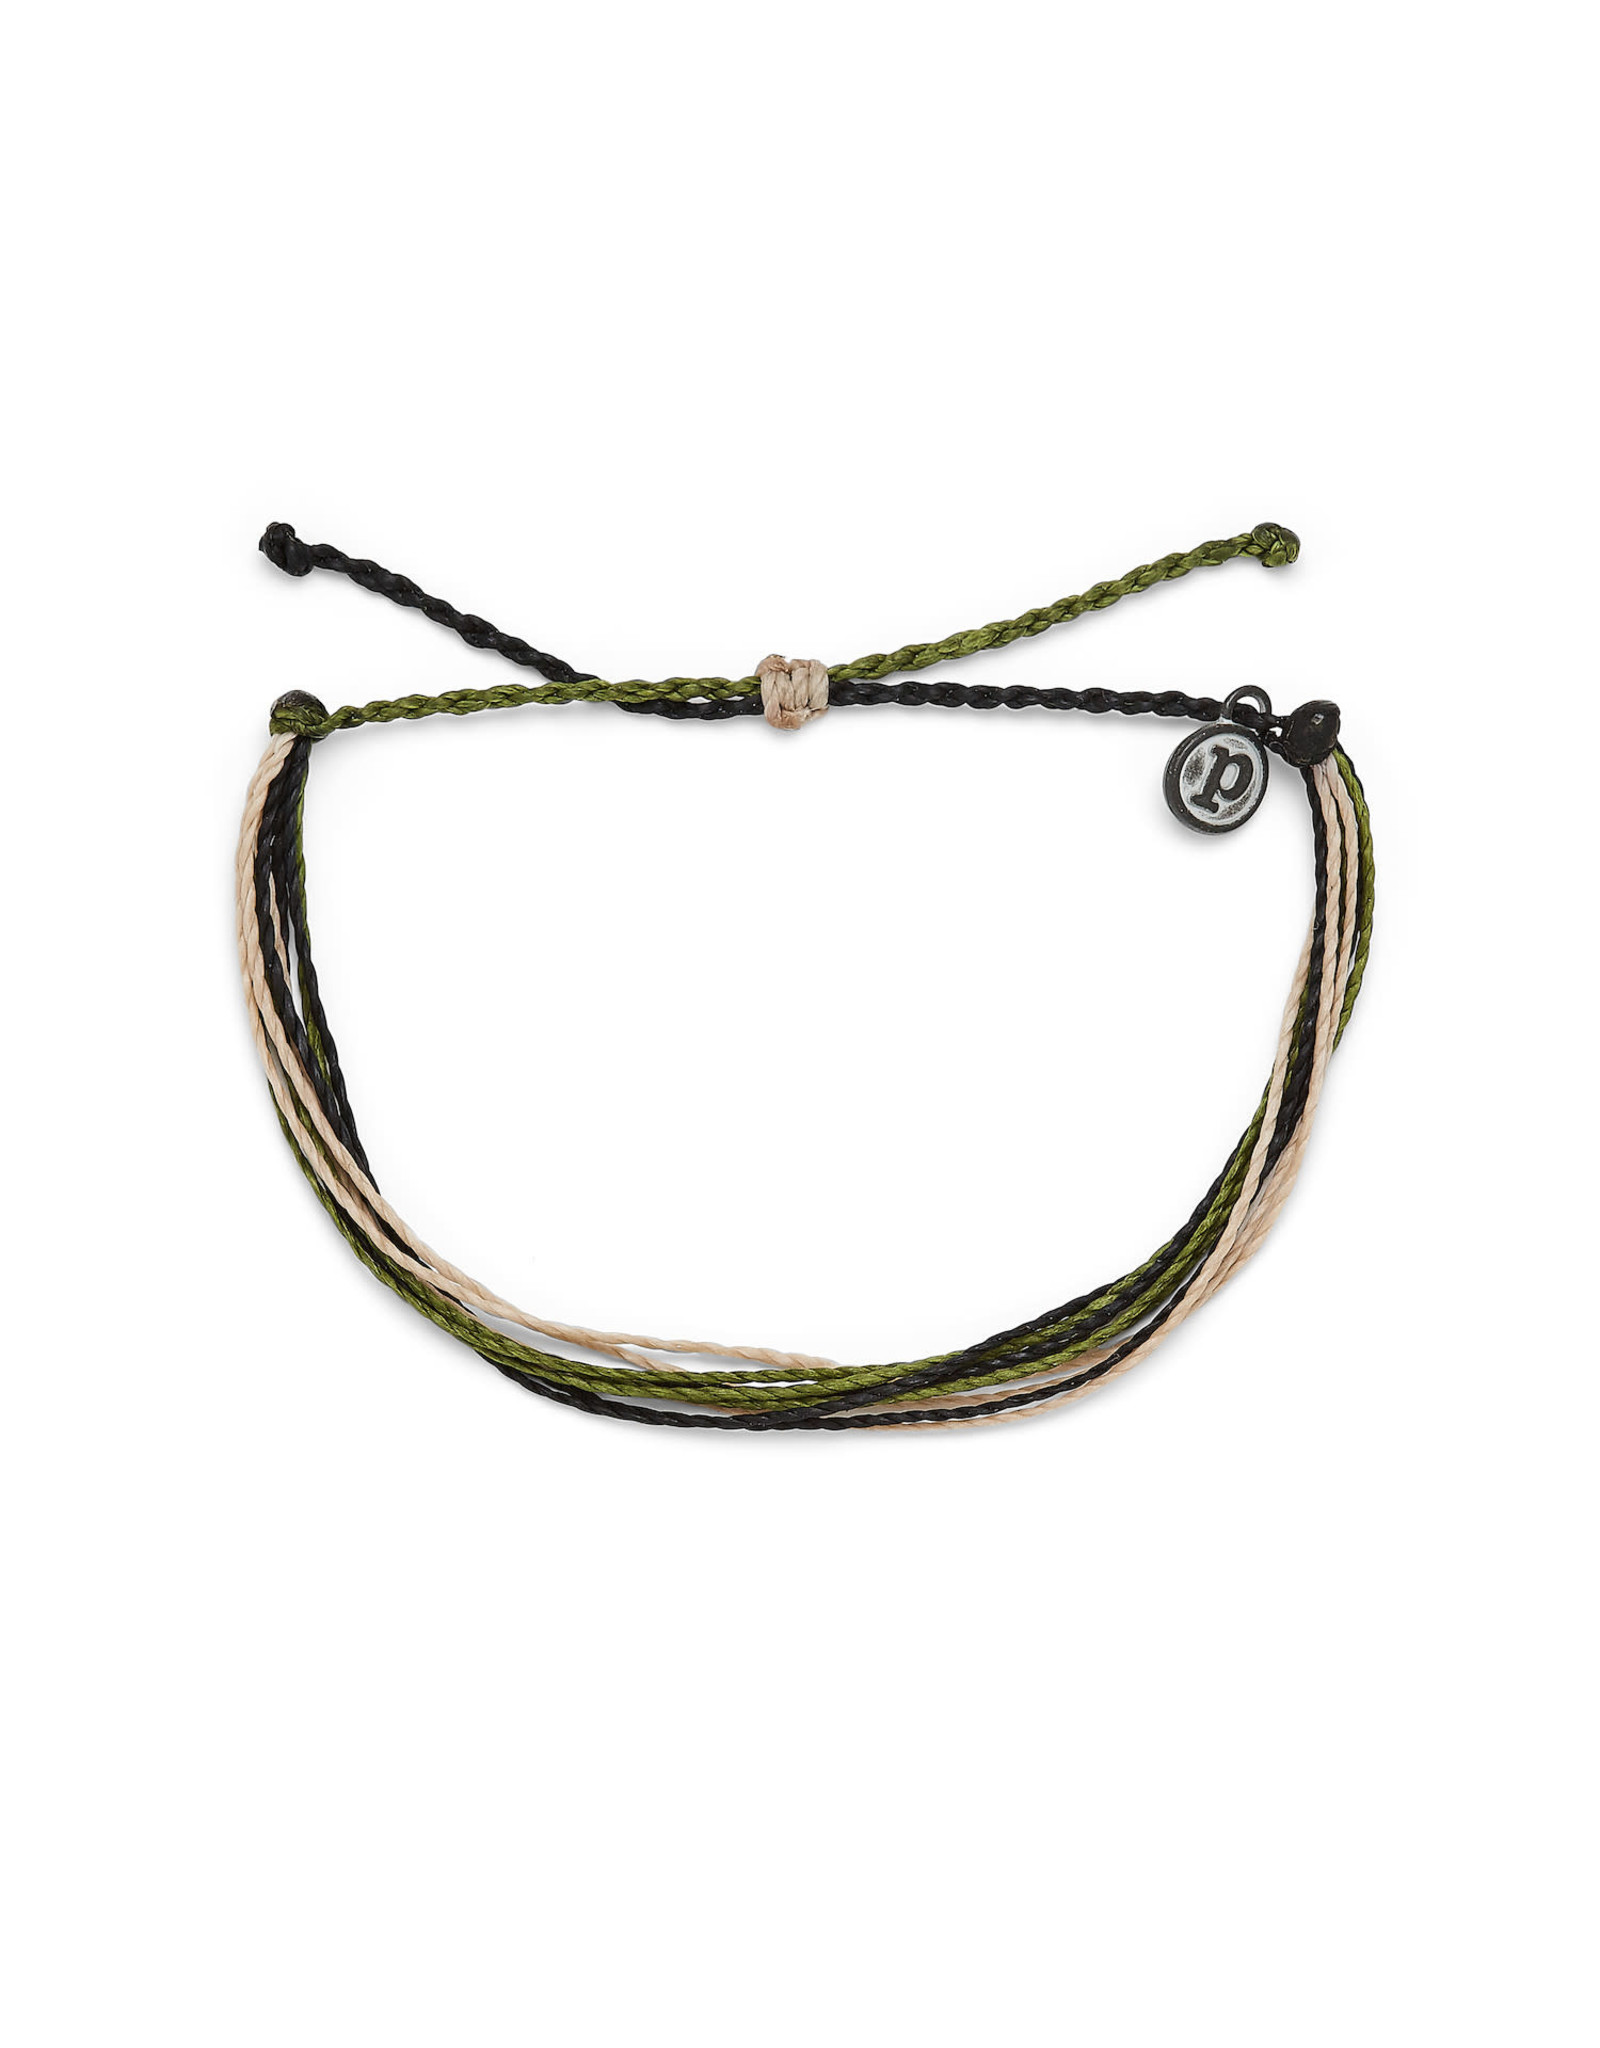 PURA VIDA BRACELET CHARITY ORIGINAL CAMO FOR OUR TROOPS